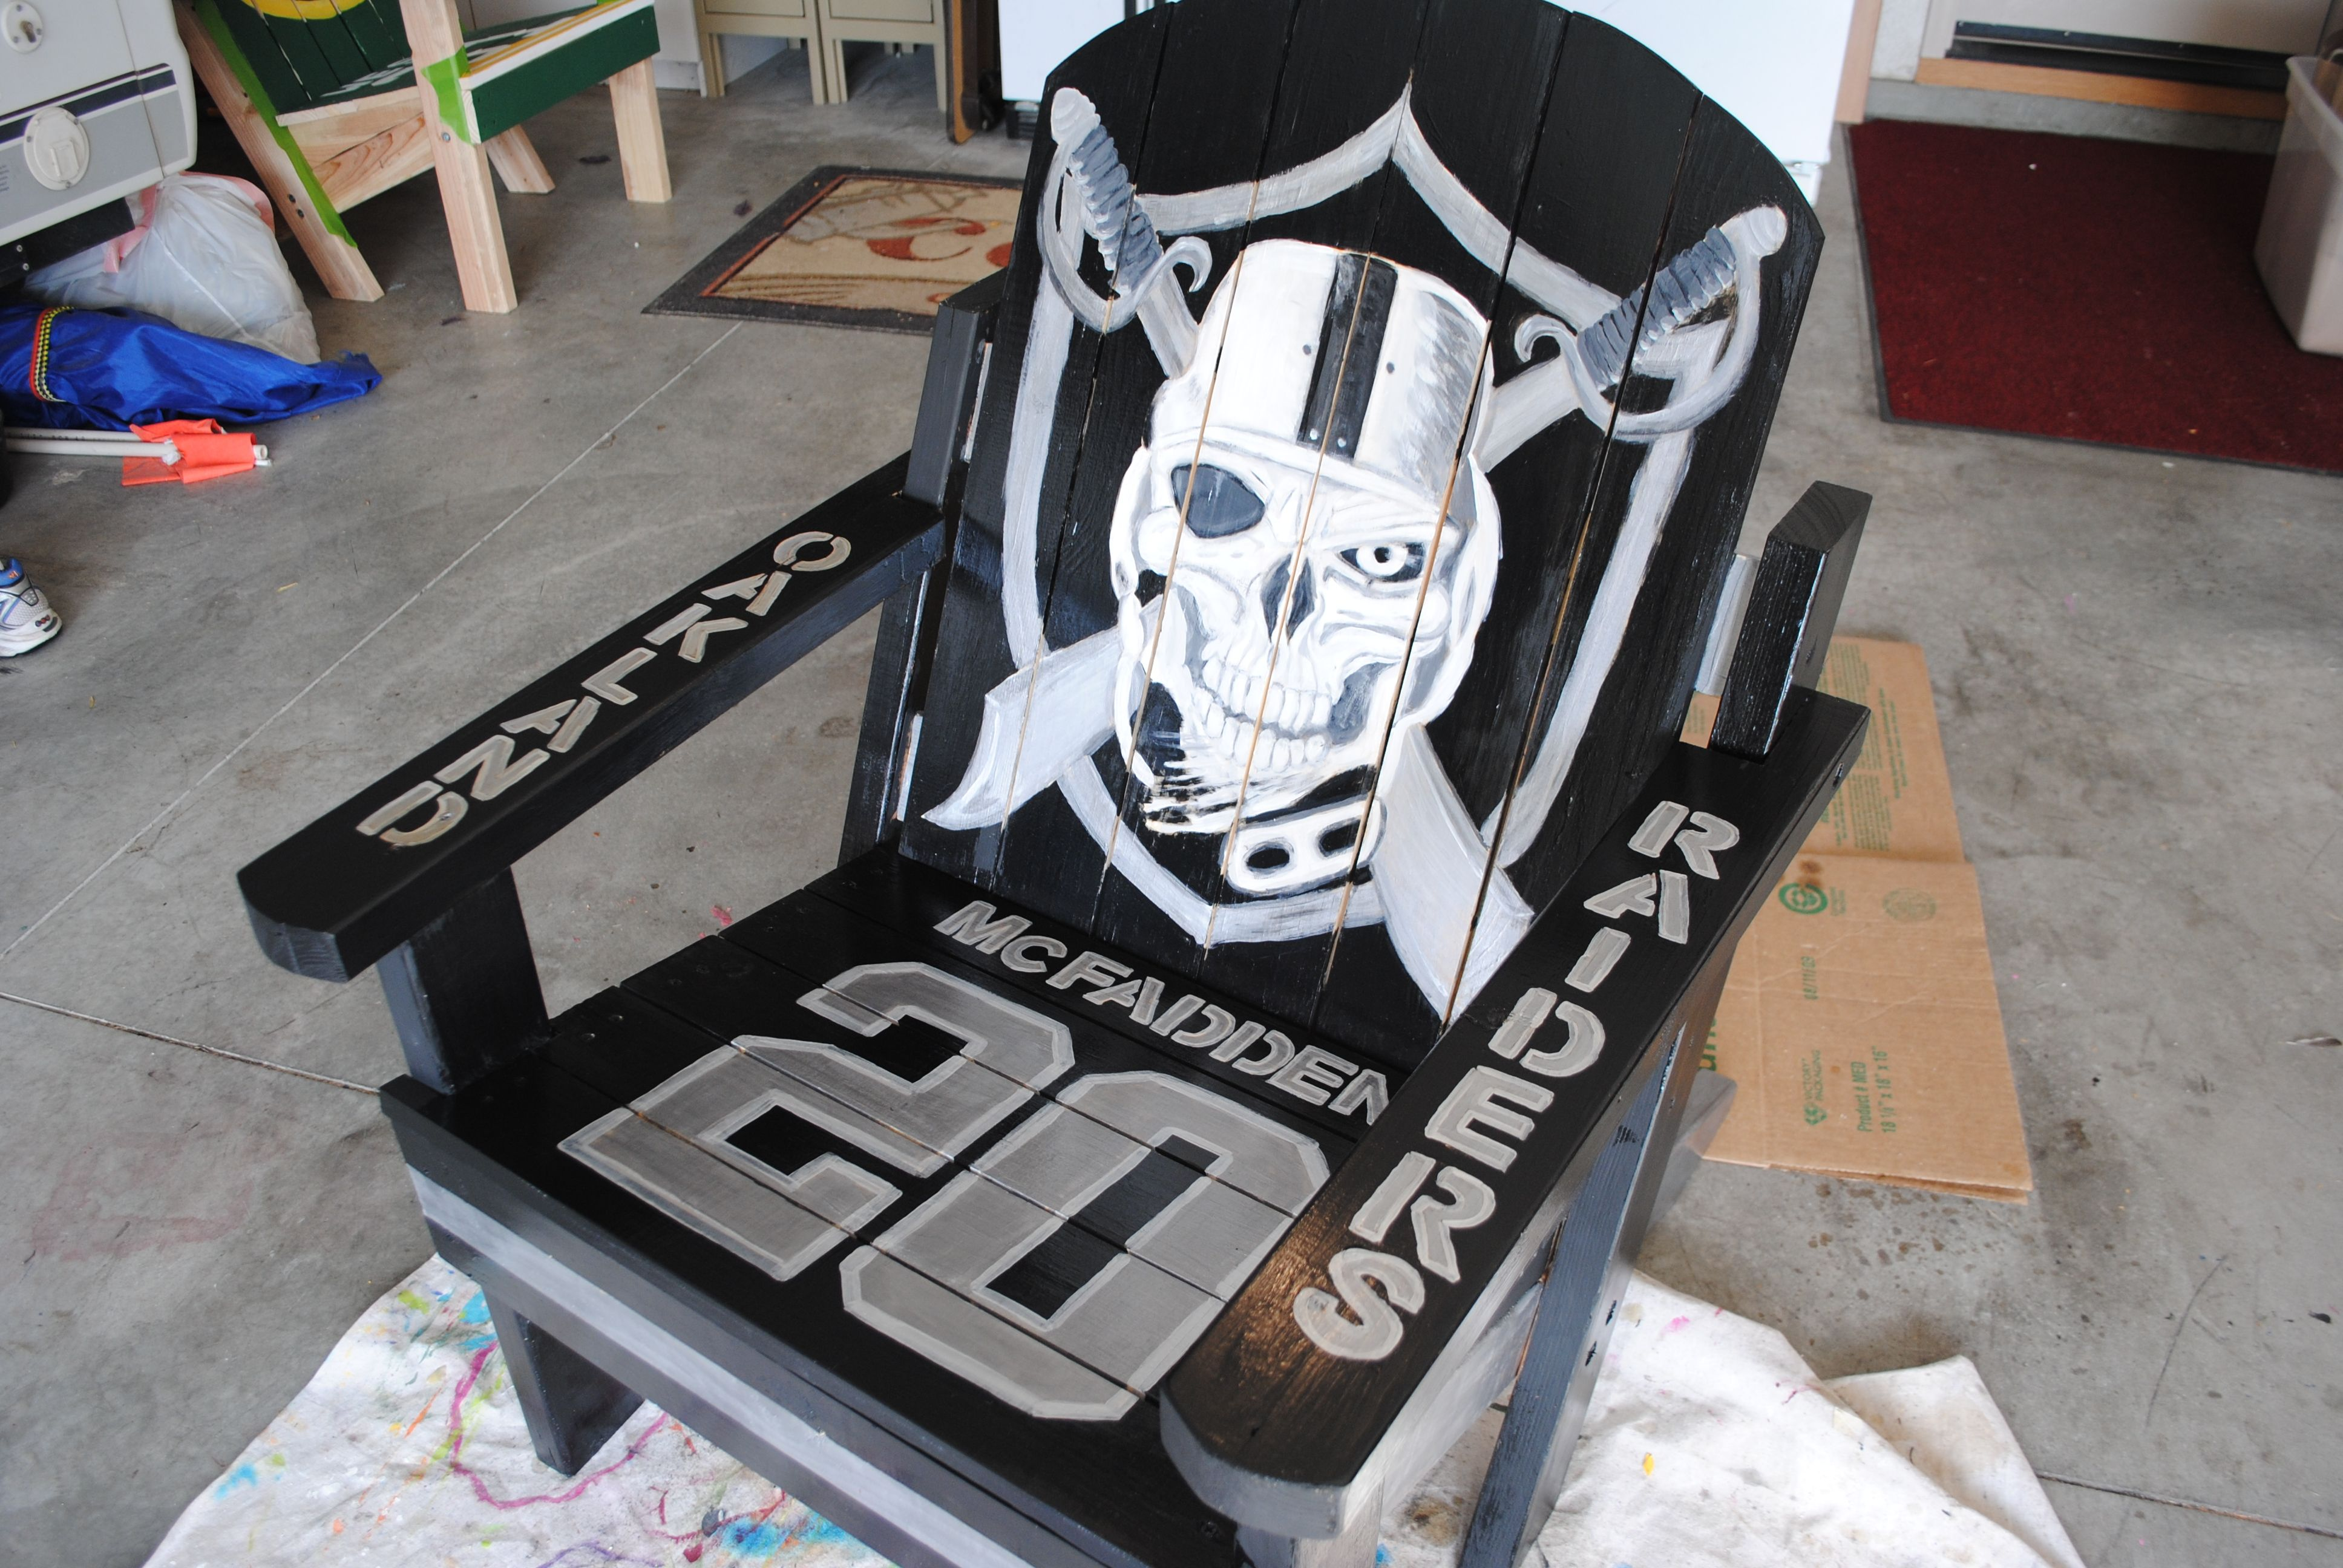 Raiders Chair Kick Ass Raiders Chair, Could Use A Better Raider Player On  It, But Iu0027m Not Gonna Complain. Iu0027d Take It In A Heartbeat!